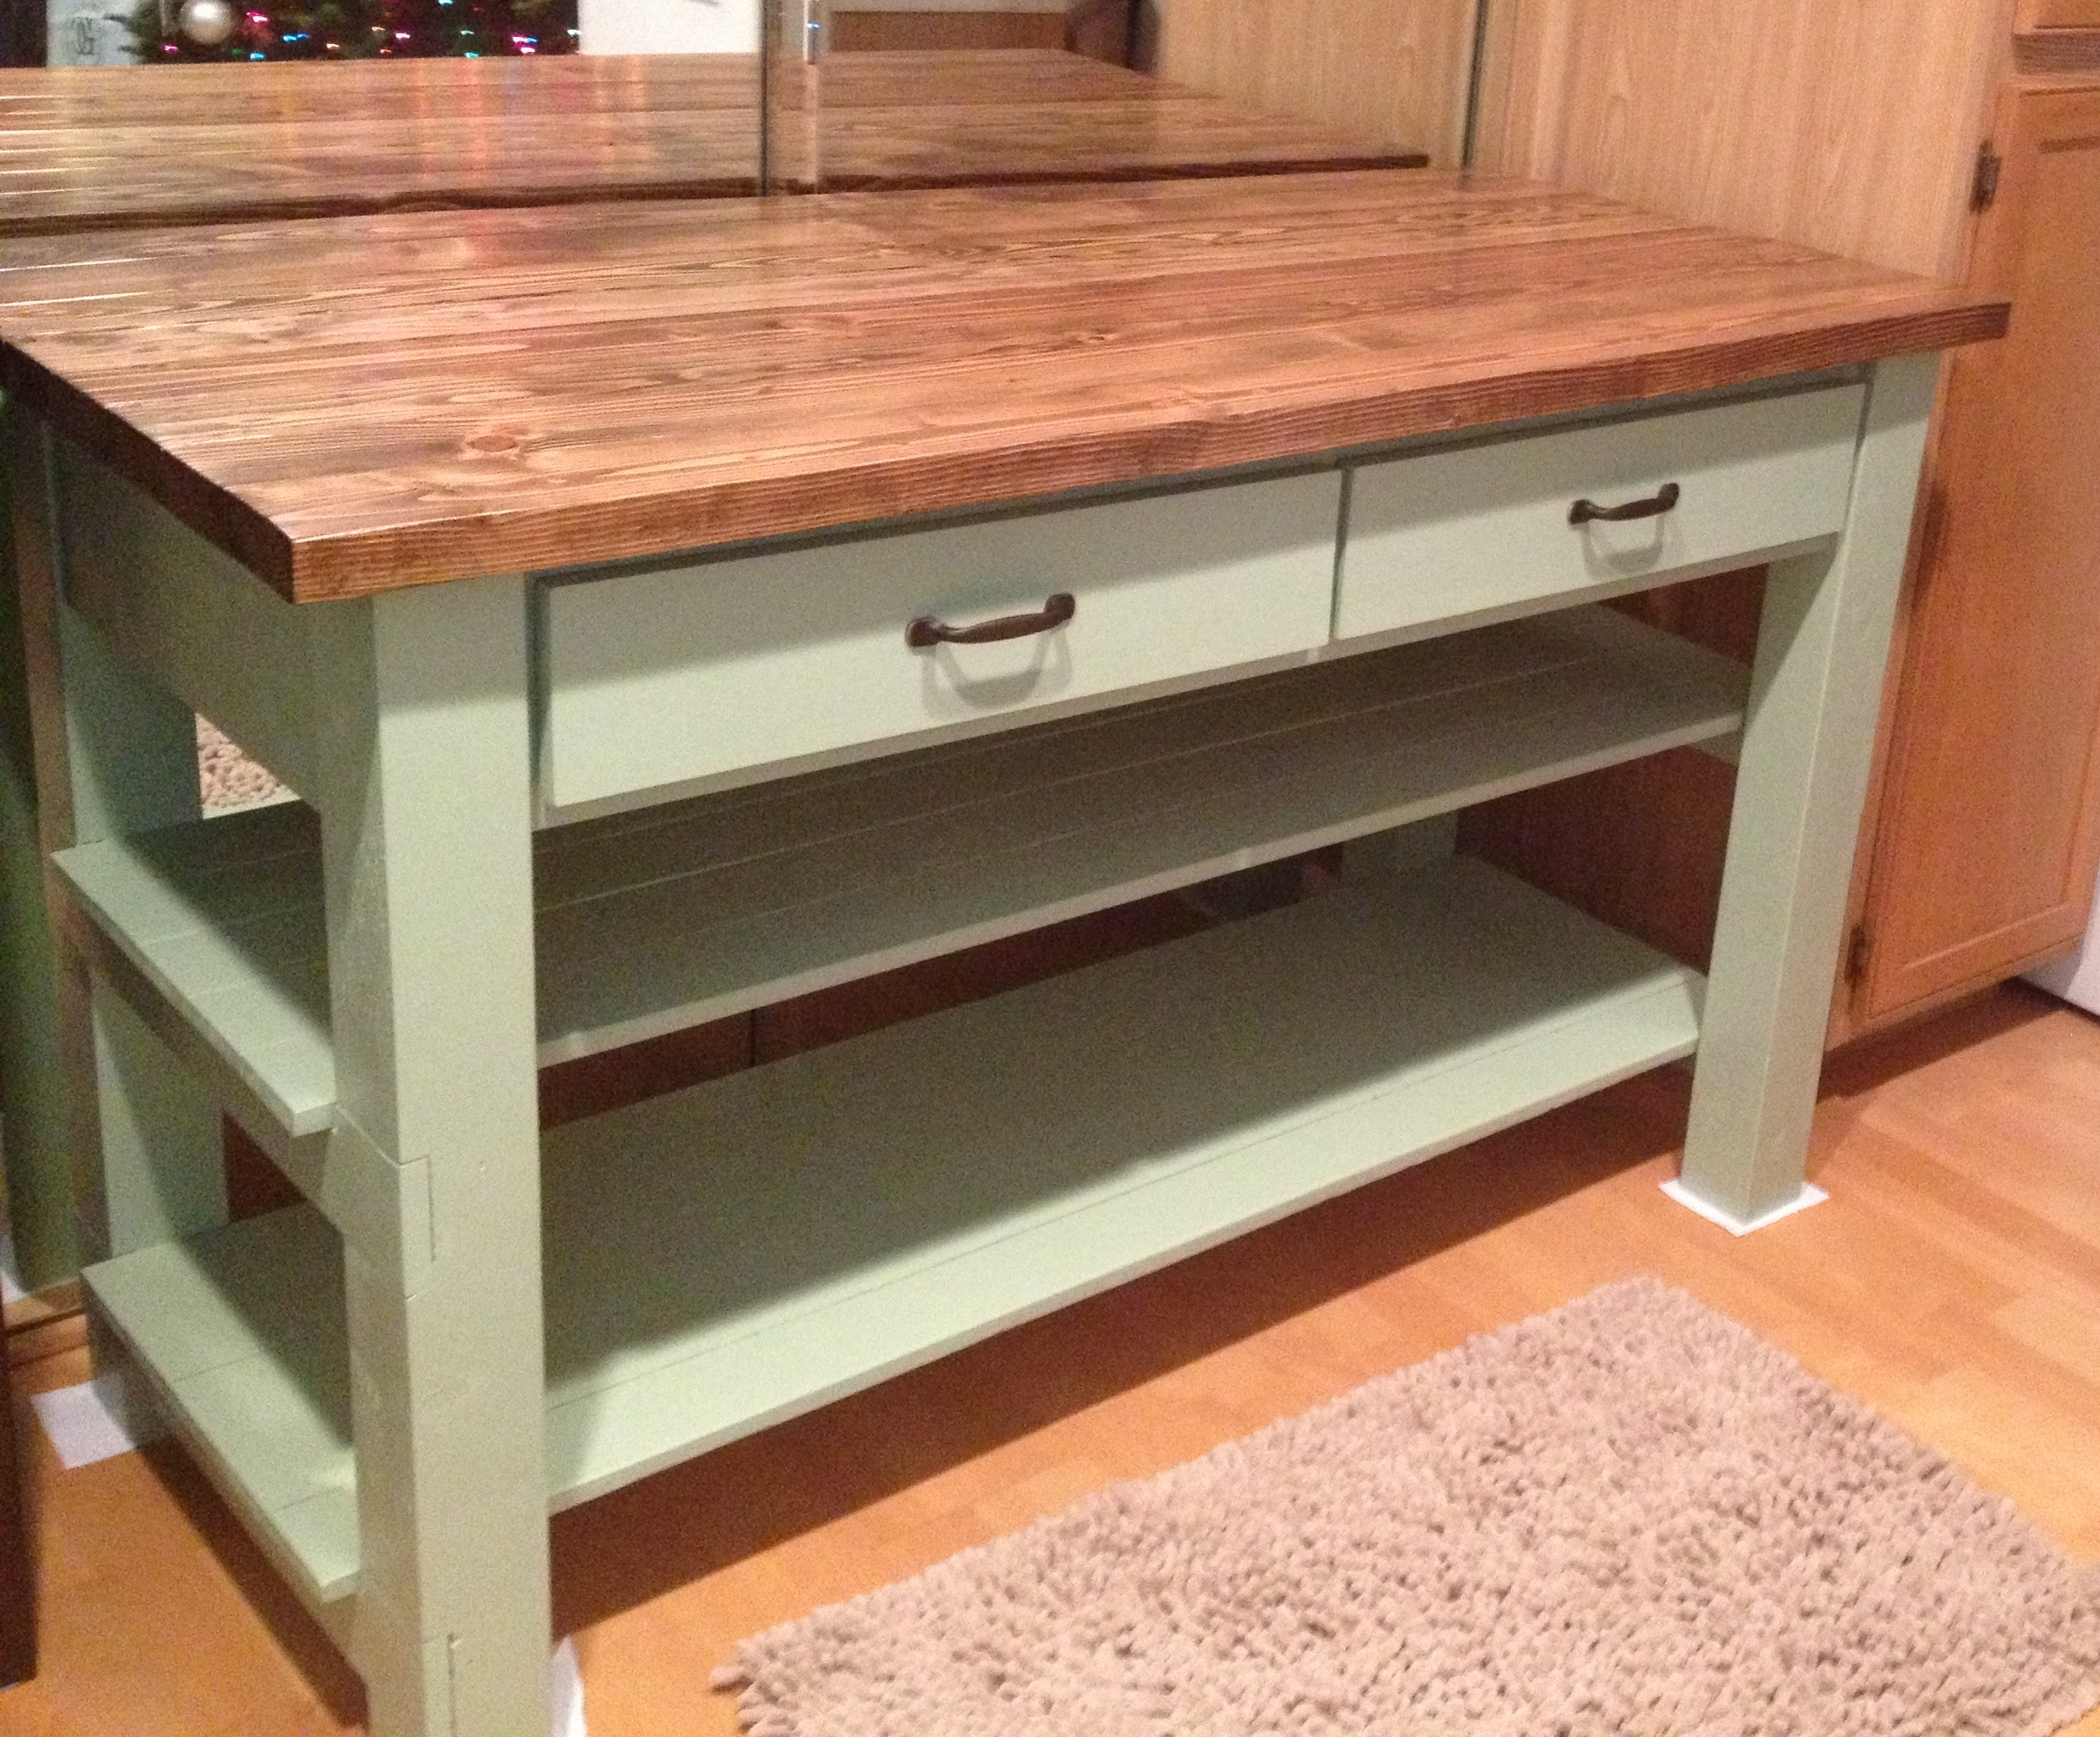 ana white kitchen island diy projects